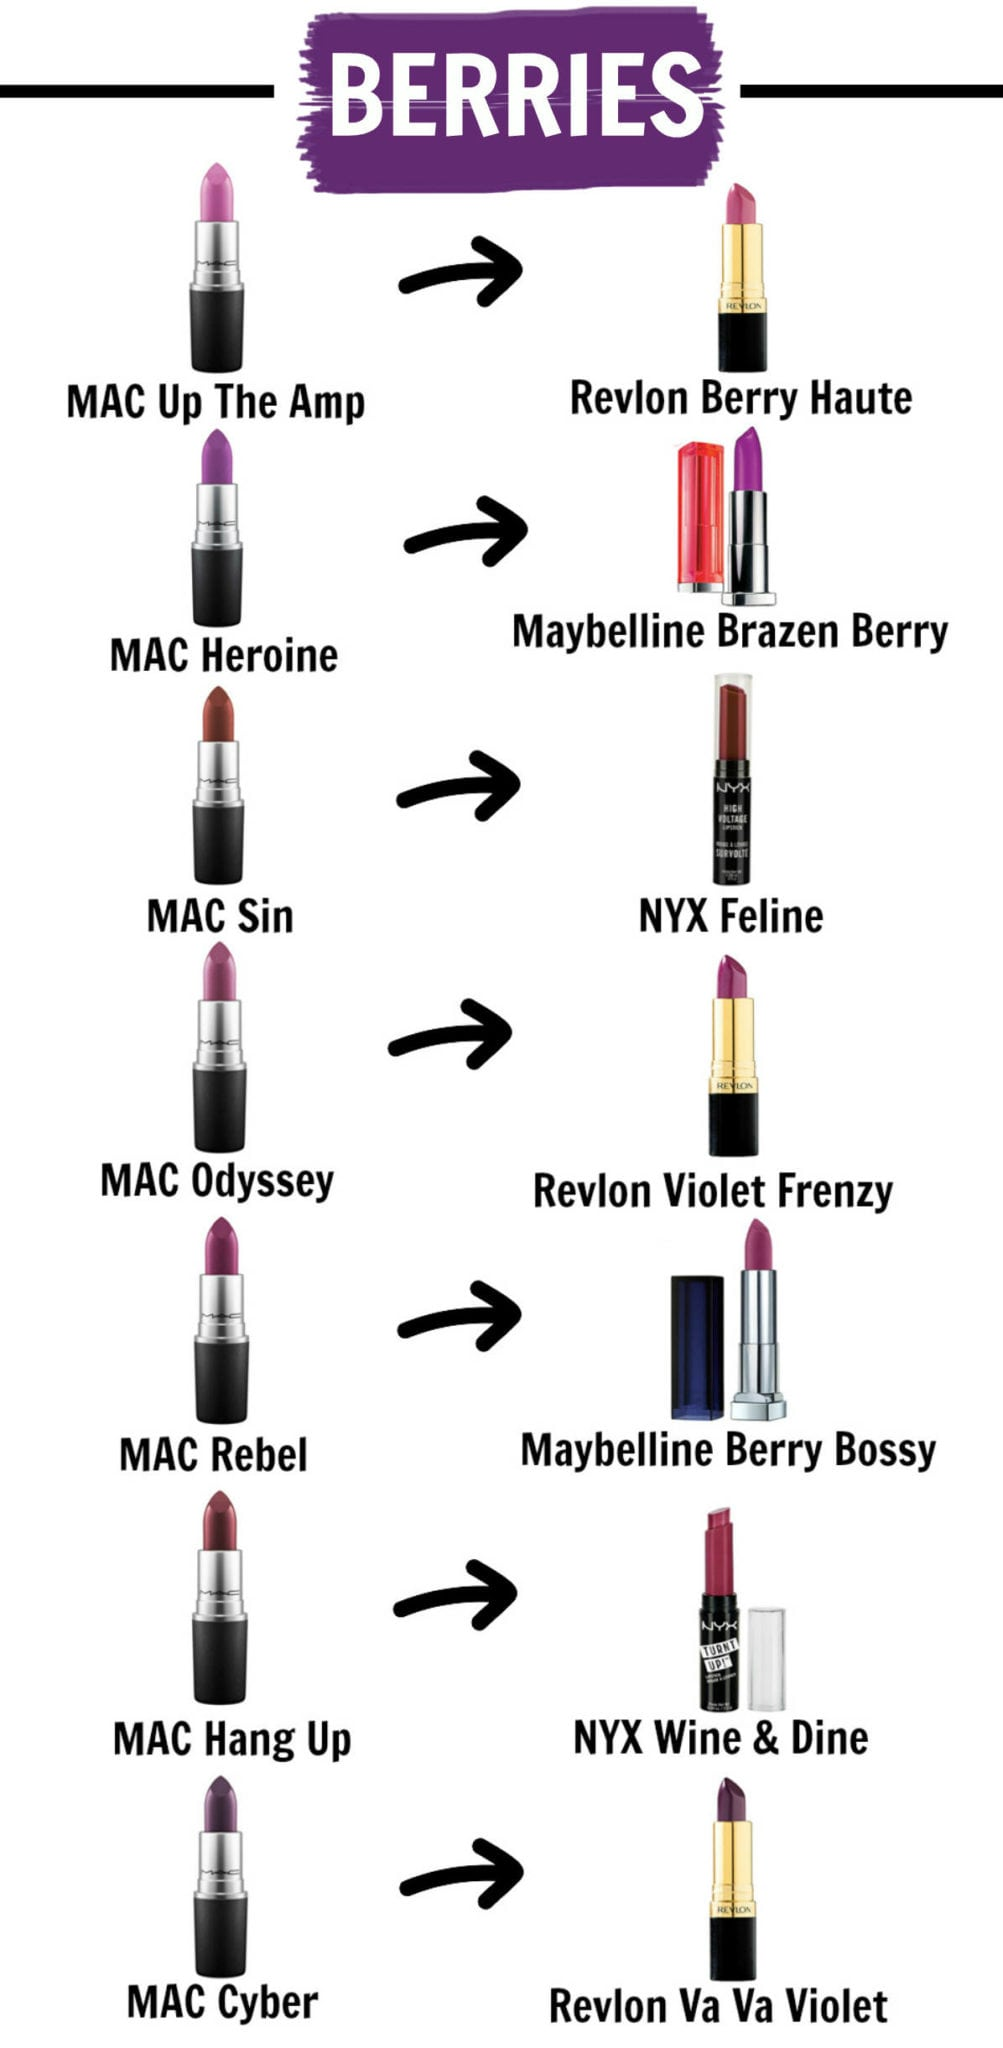 Beauty blogger Mash Elle shares a list of MAC bestseller lipstick dupes - Maybelline, NYX, L'oreal, e.l.f, Milani, Rimmel, Wet N Wild - MAC Lipstick Bestsellers: Dupe List featured by popular Orlando beauty blogger Mash Elle